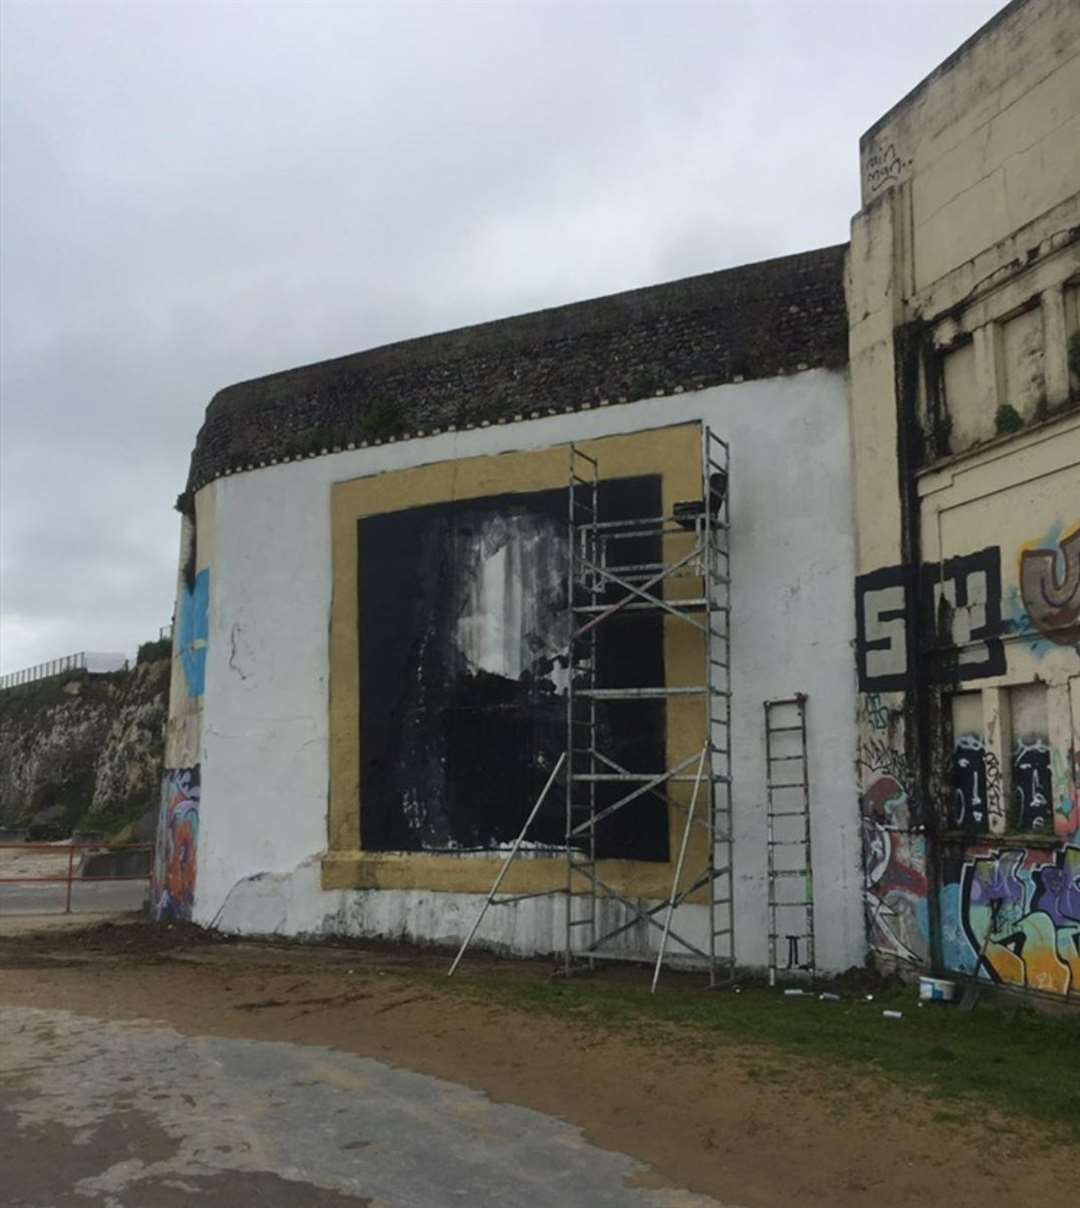 Sir David Attenborough's fresco was painted on a wall near Margate Lido.  Image: @ pad303